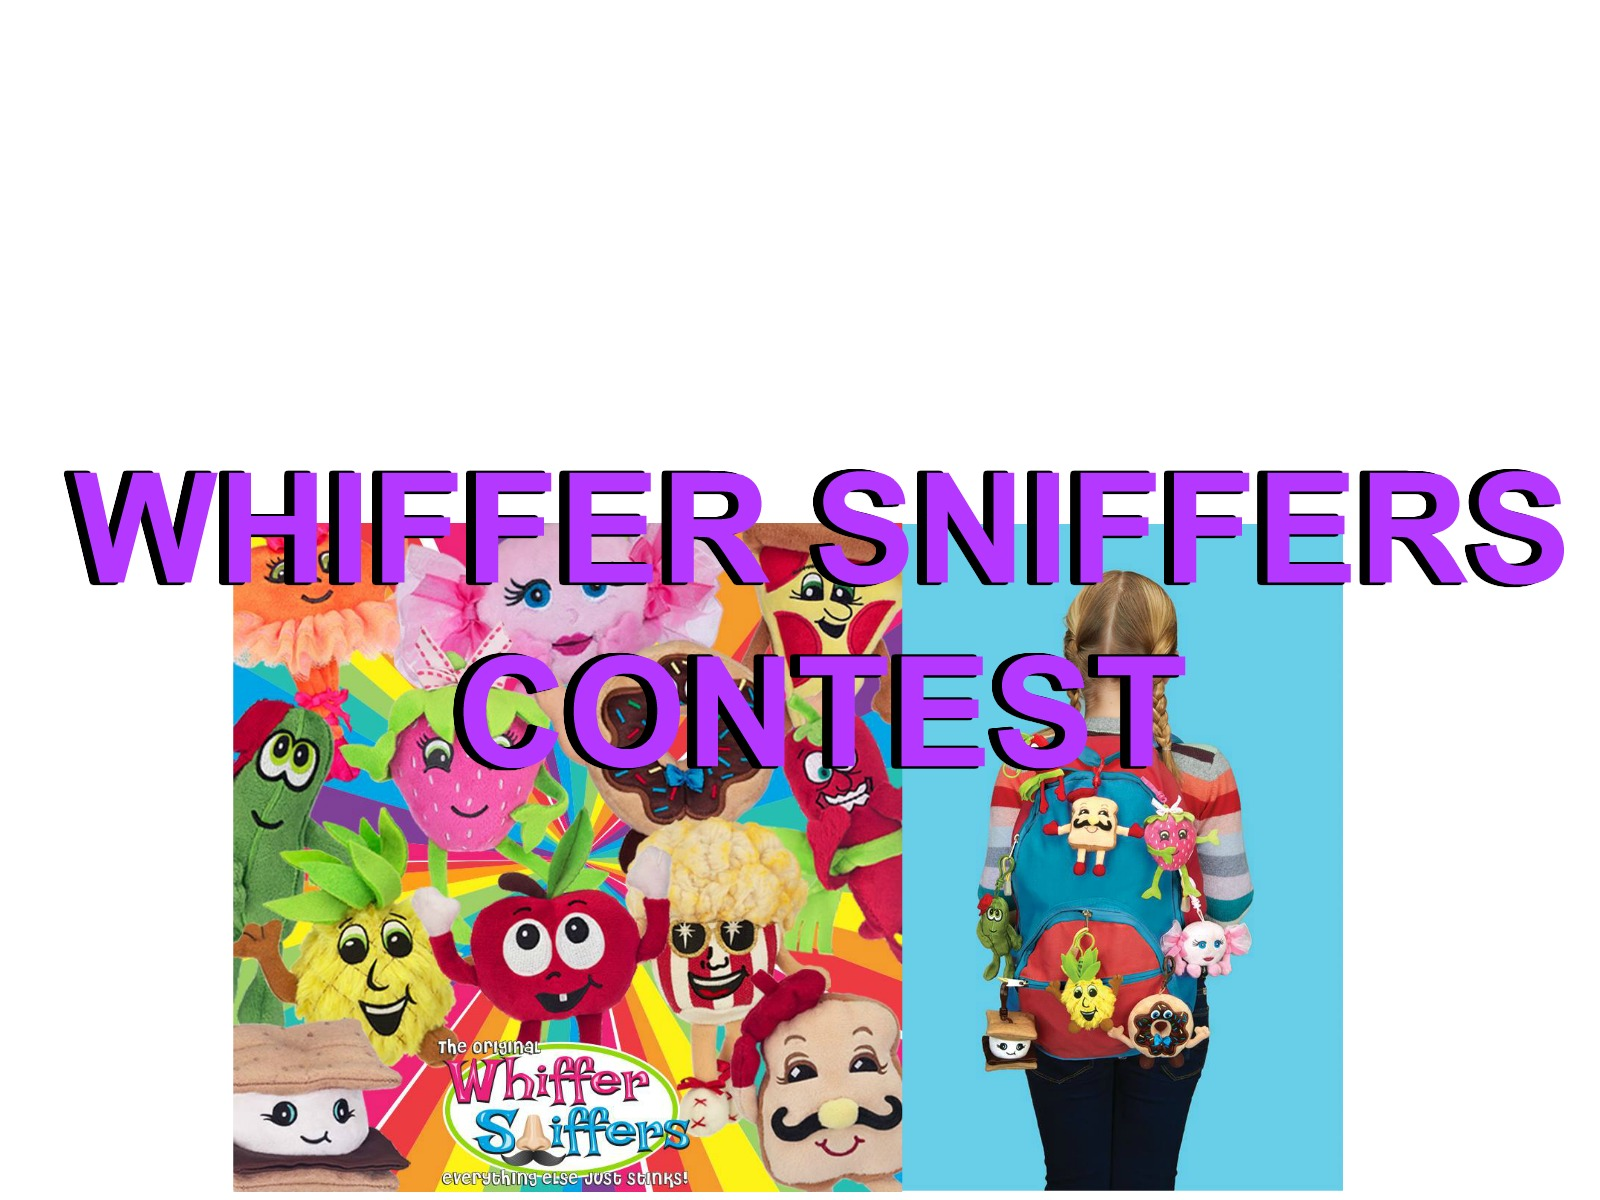 Whiffer Sniffers Contest!